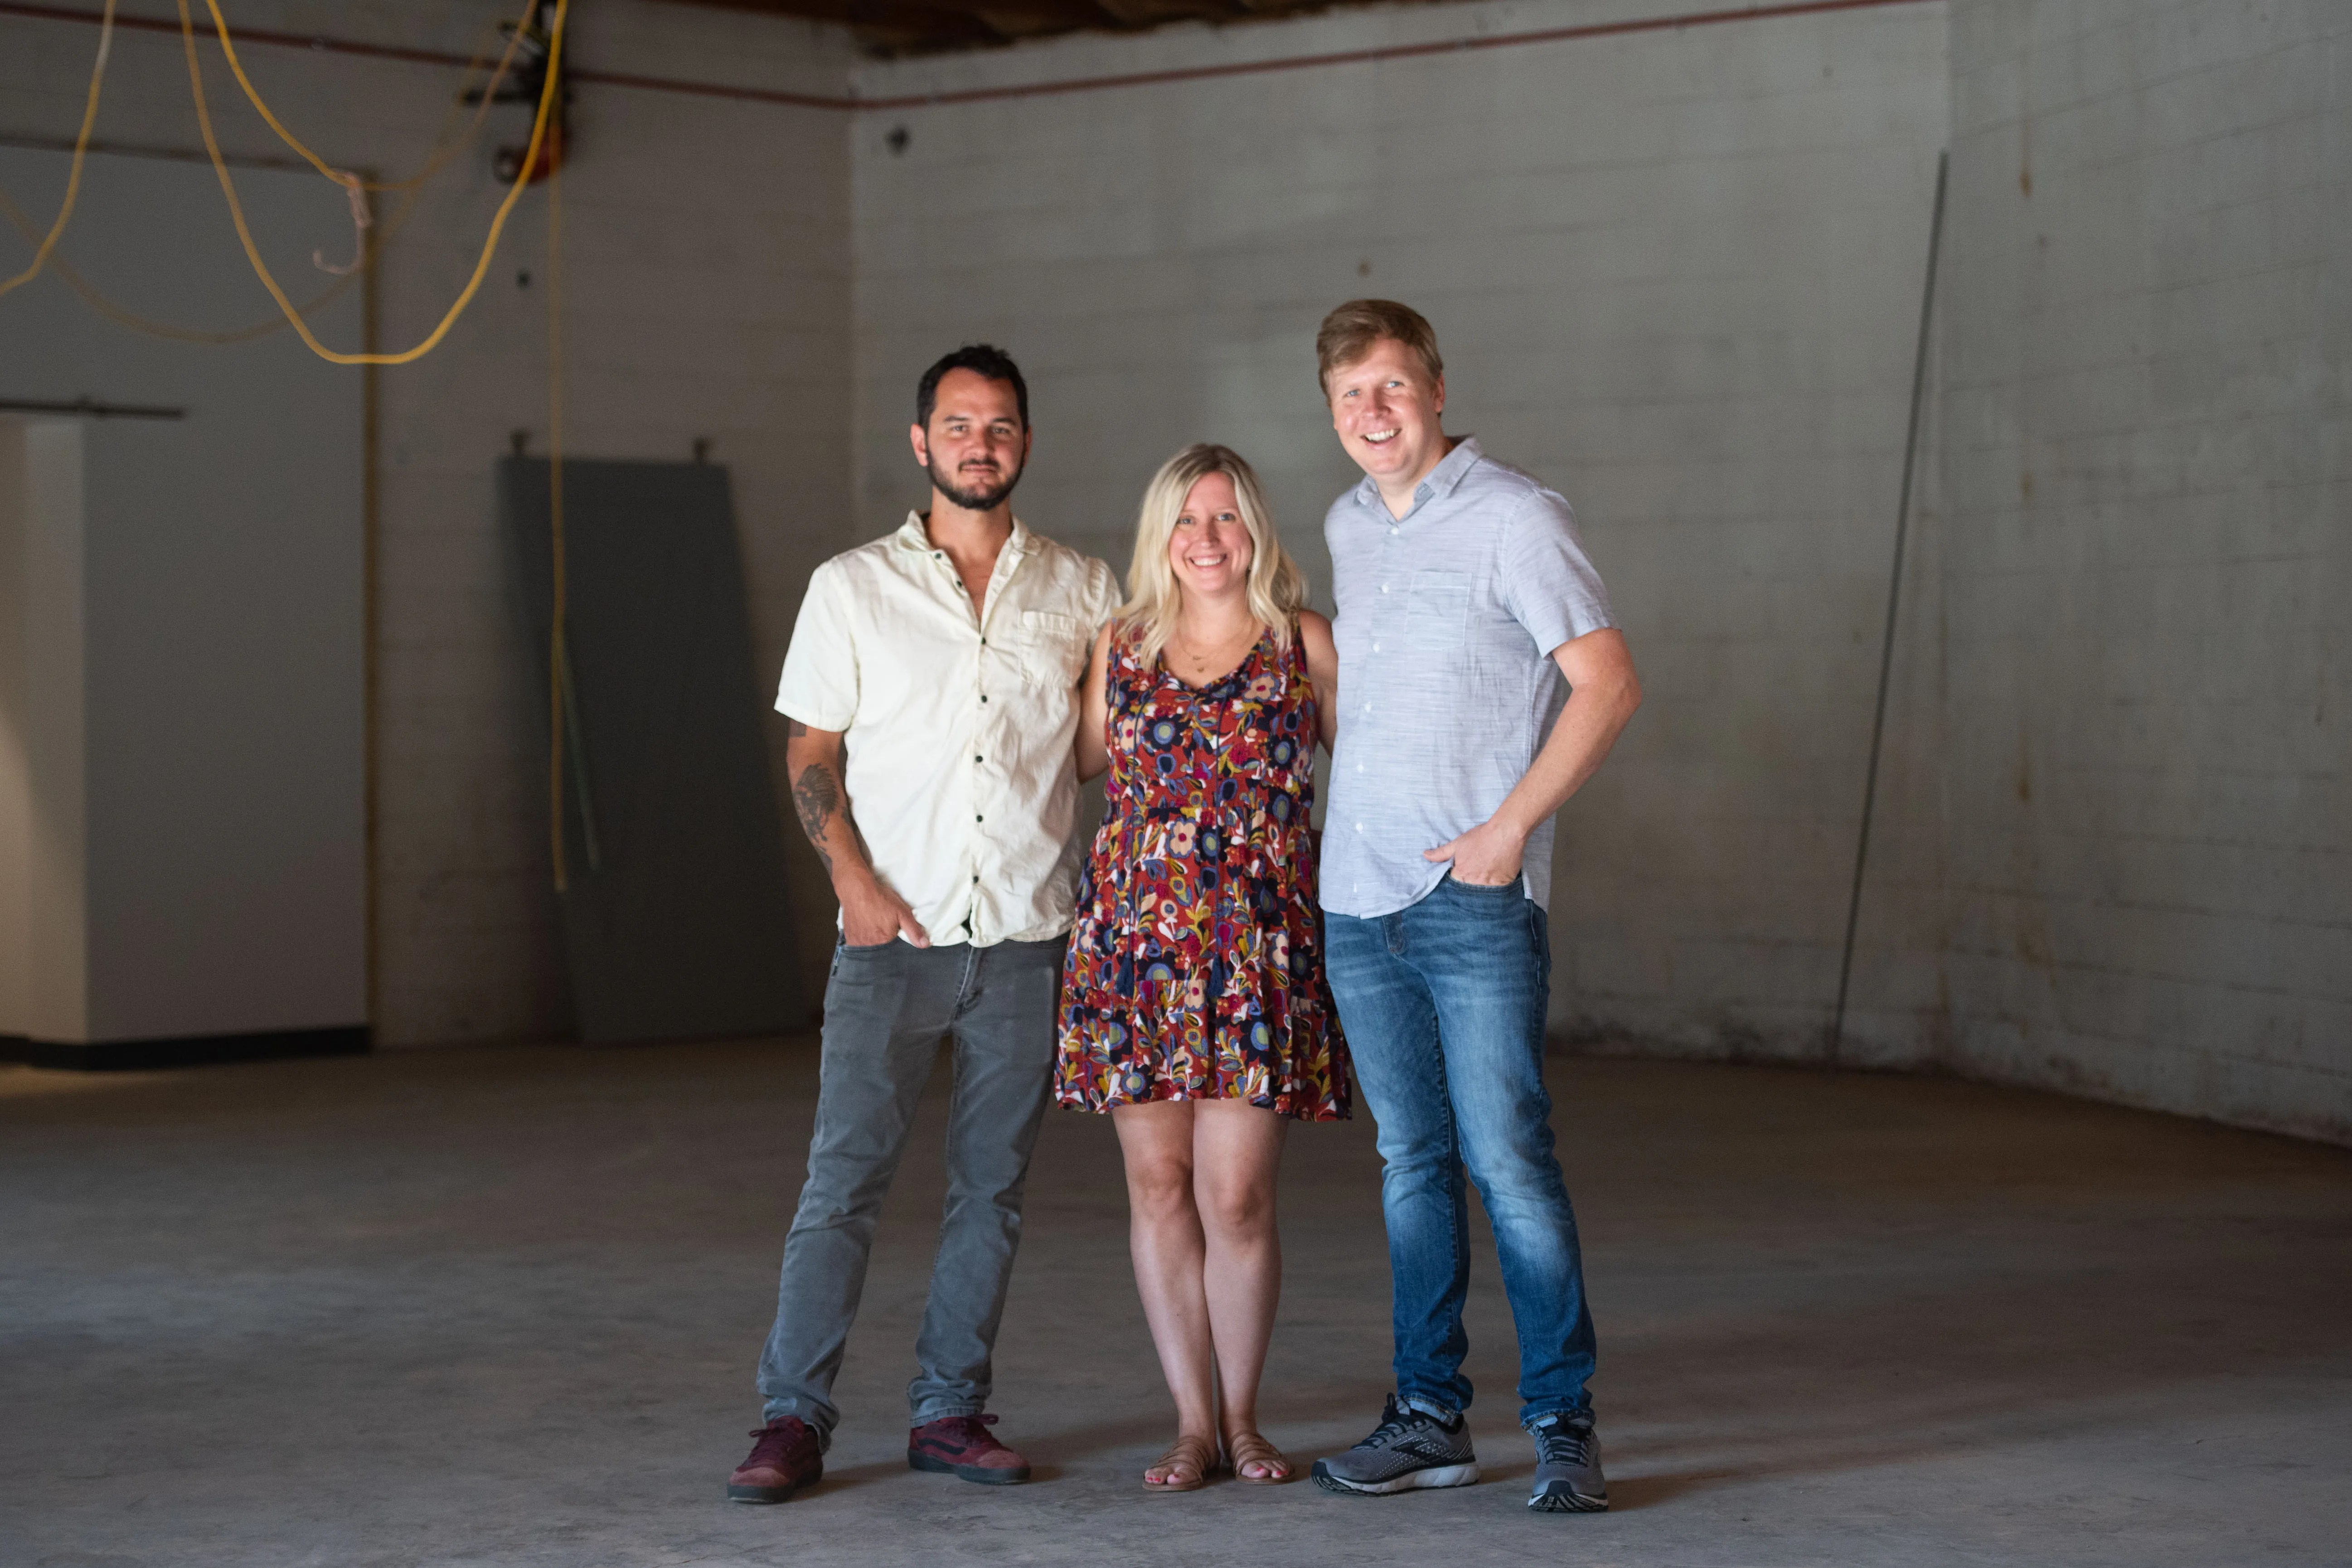 From left to right, Alex Morgan, Beth and Greg McPhee, chef and co-owners of upcoming restaurant Mr. Crisp, pose for a photo at the location for the restaurant in Greenville, S.C. Friday, July 16, 2021.